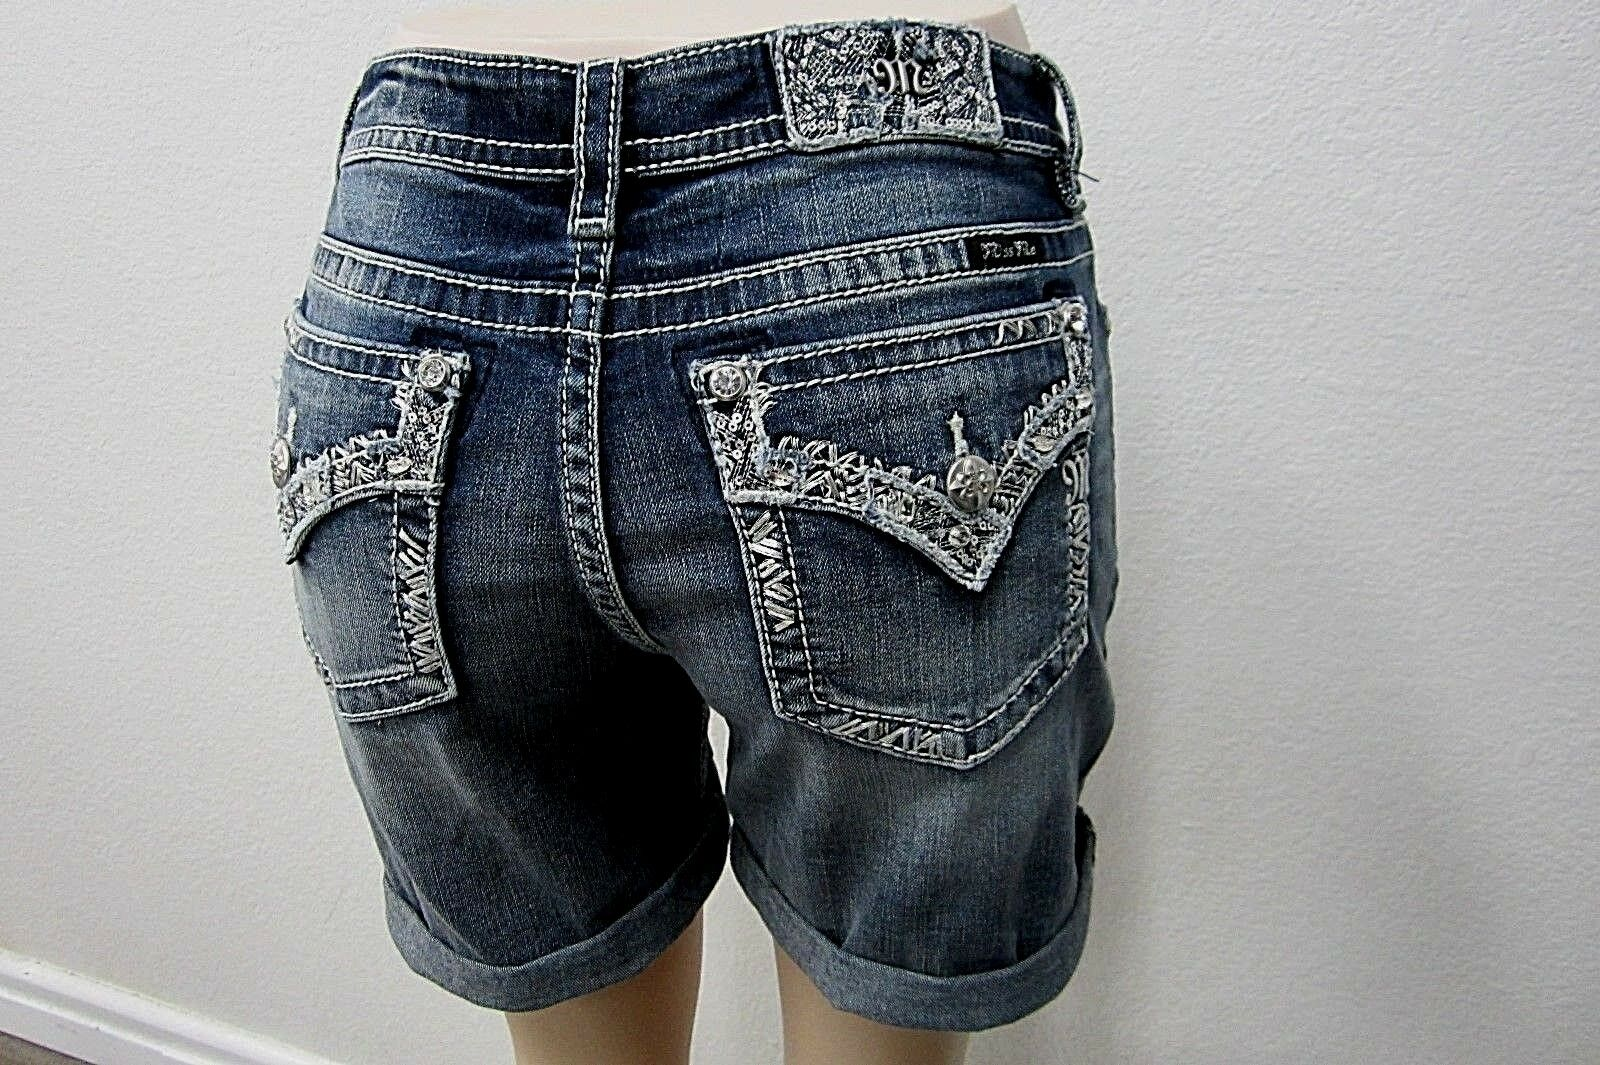 NWT Miss Me Cute Women's Mid Rise Denim Shorts M3196D Size 30 x 6